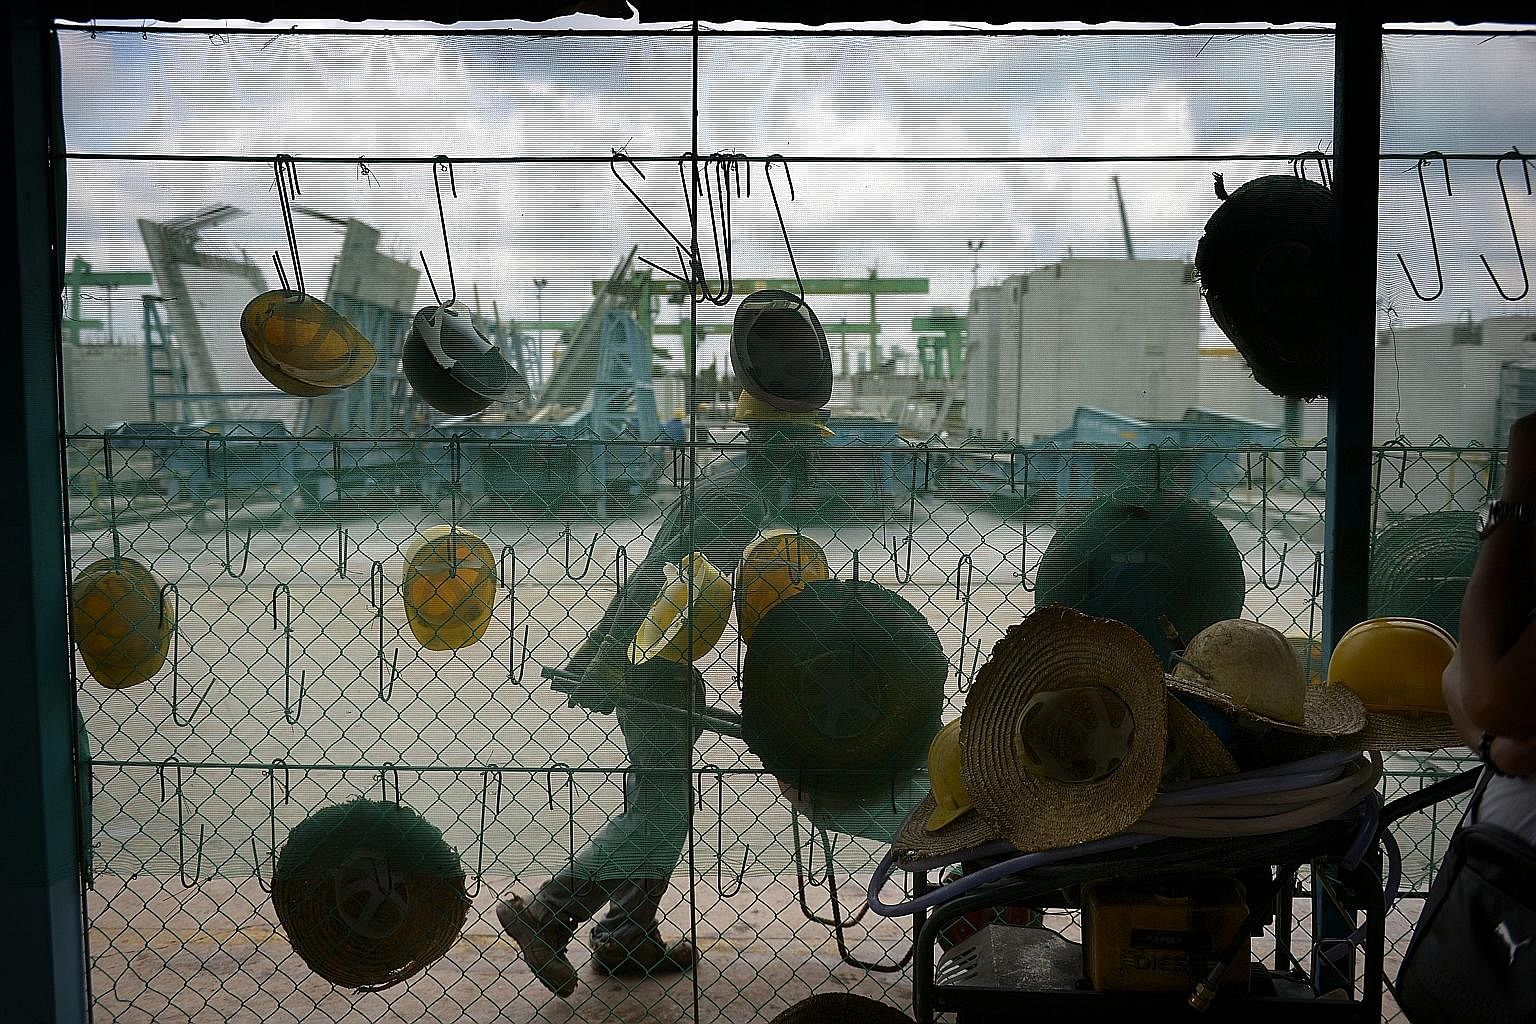 Workers' safety helmets hanging outside the canteen in the Sunway Concrete precast plant in Tampines. An army of workers work almost daily to churn out tonnes of precast building components for construction sites islandwide.